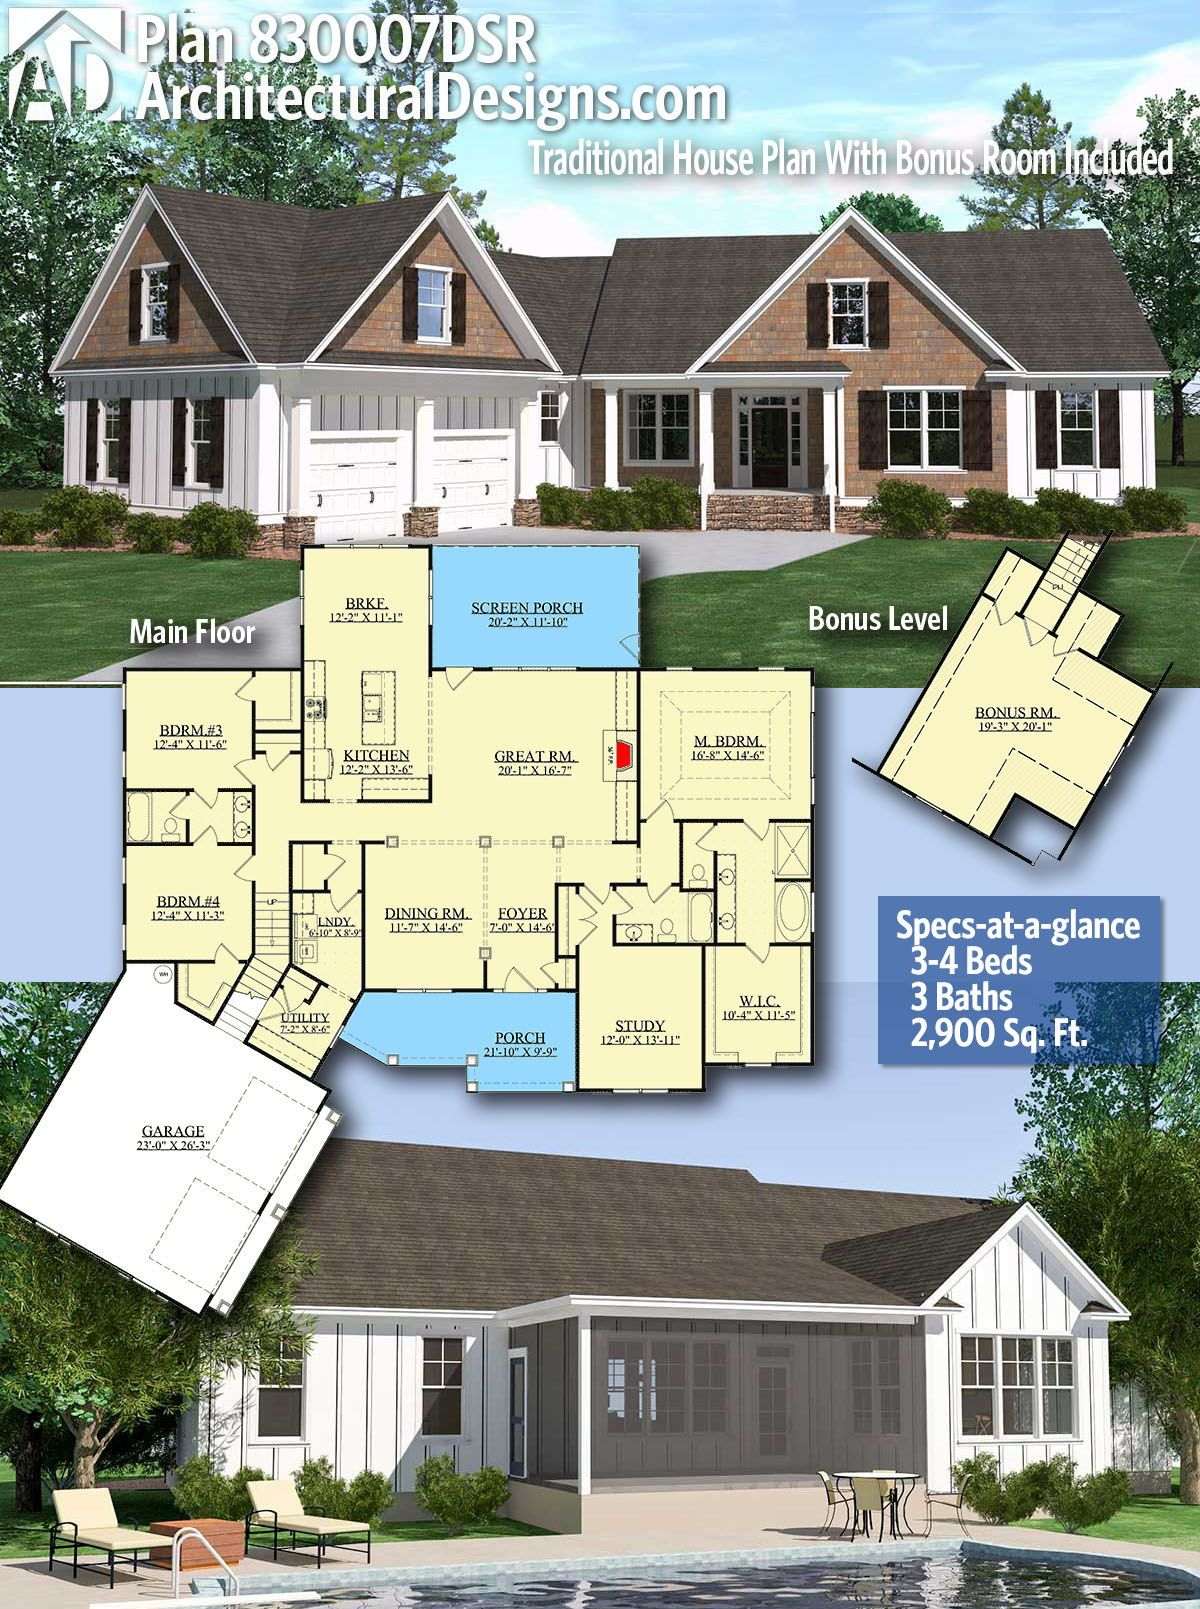 Plan 830007dsr Traditional House Plan With Bonus Room Included